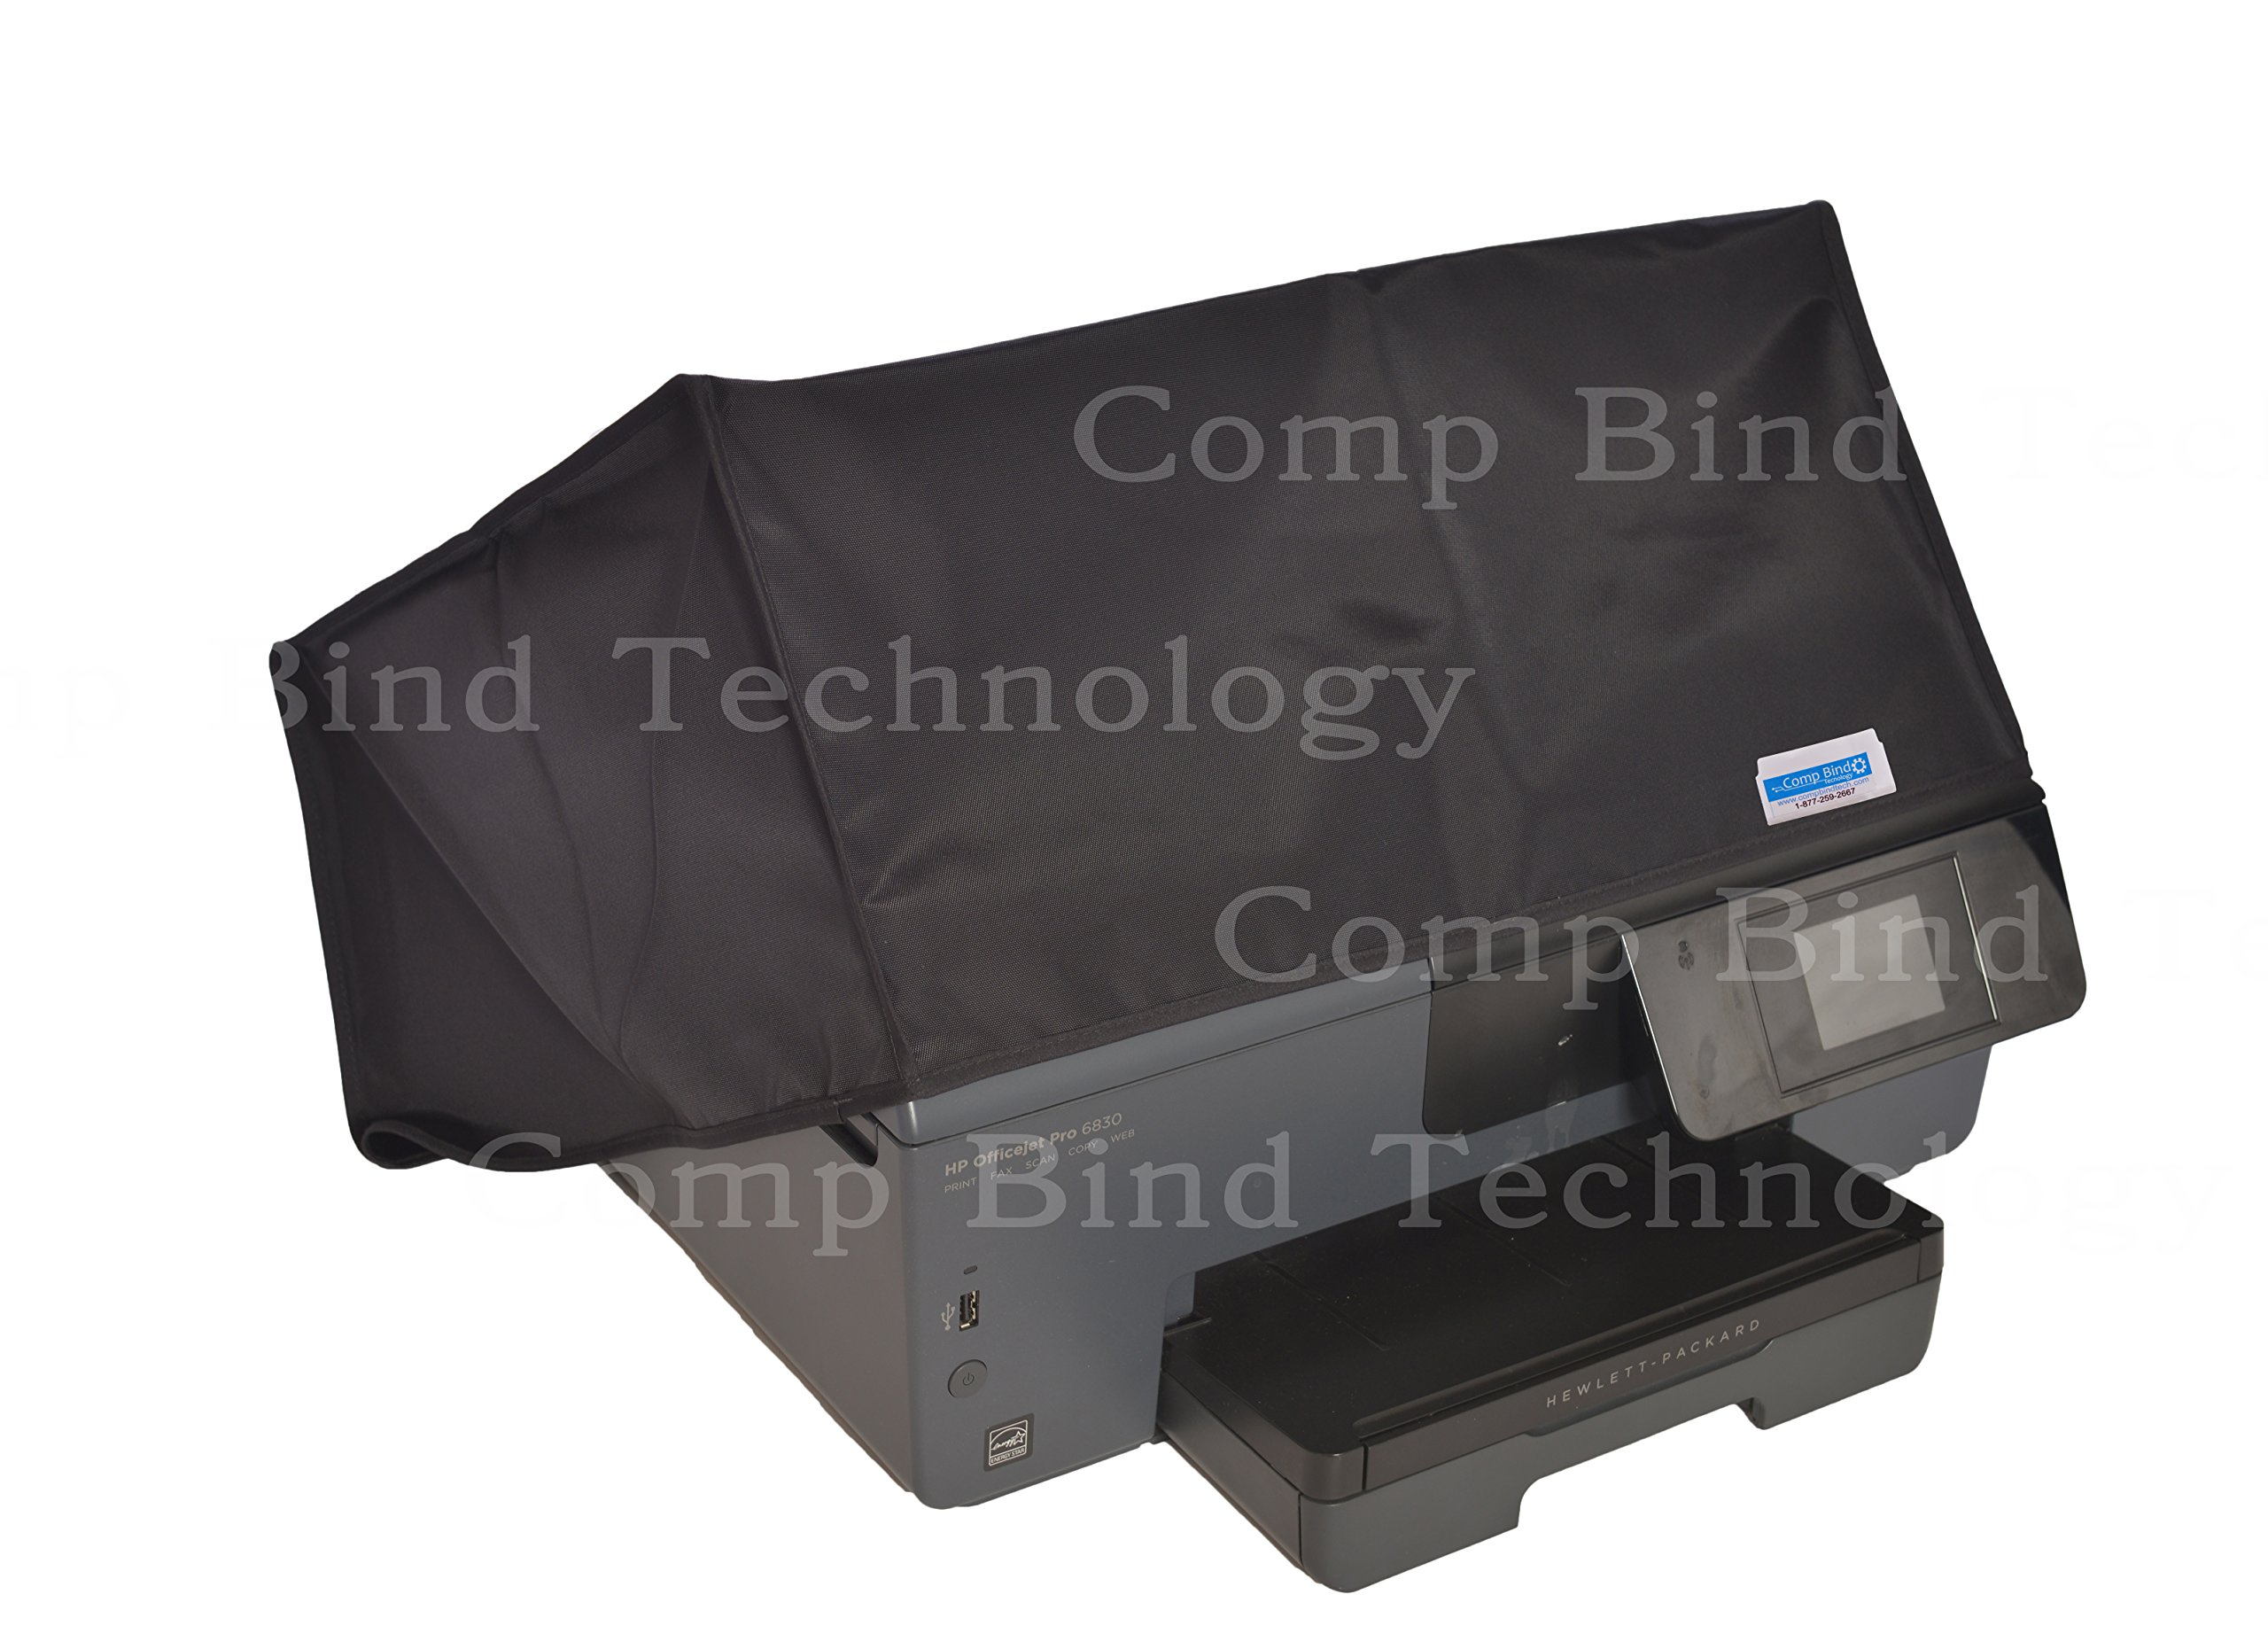 Comp Bind Technology Printer Dust Cover for HP Envy Photo 7855 All-in-One Printer, Black Nylon Anti-Static Dust Cover By Viziflex Seels, 17.8''W x 16.2''D x 7.5''H''